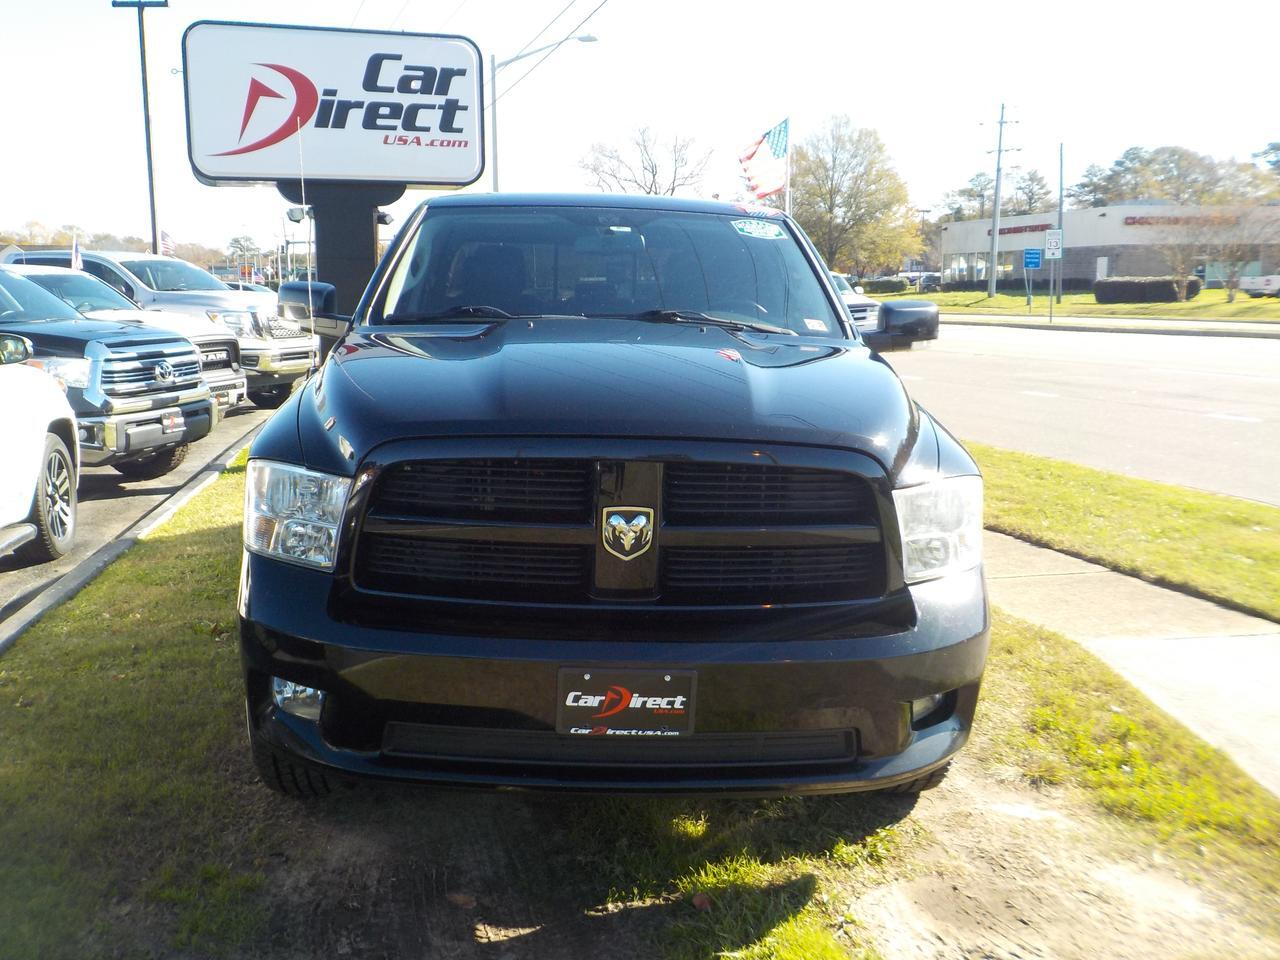 2012 DODGE RAM 1500 QUAD CAB SPORT 4X4, LEATHER, BED LINER, TOW PACKAGE, ALPINE SOUND SYSTEM, EXTREMELY CLEAN! Virginia Beach VA